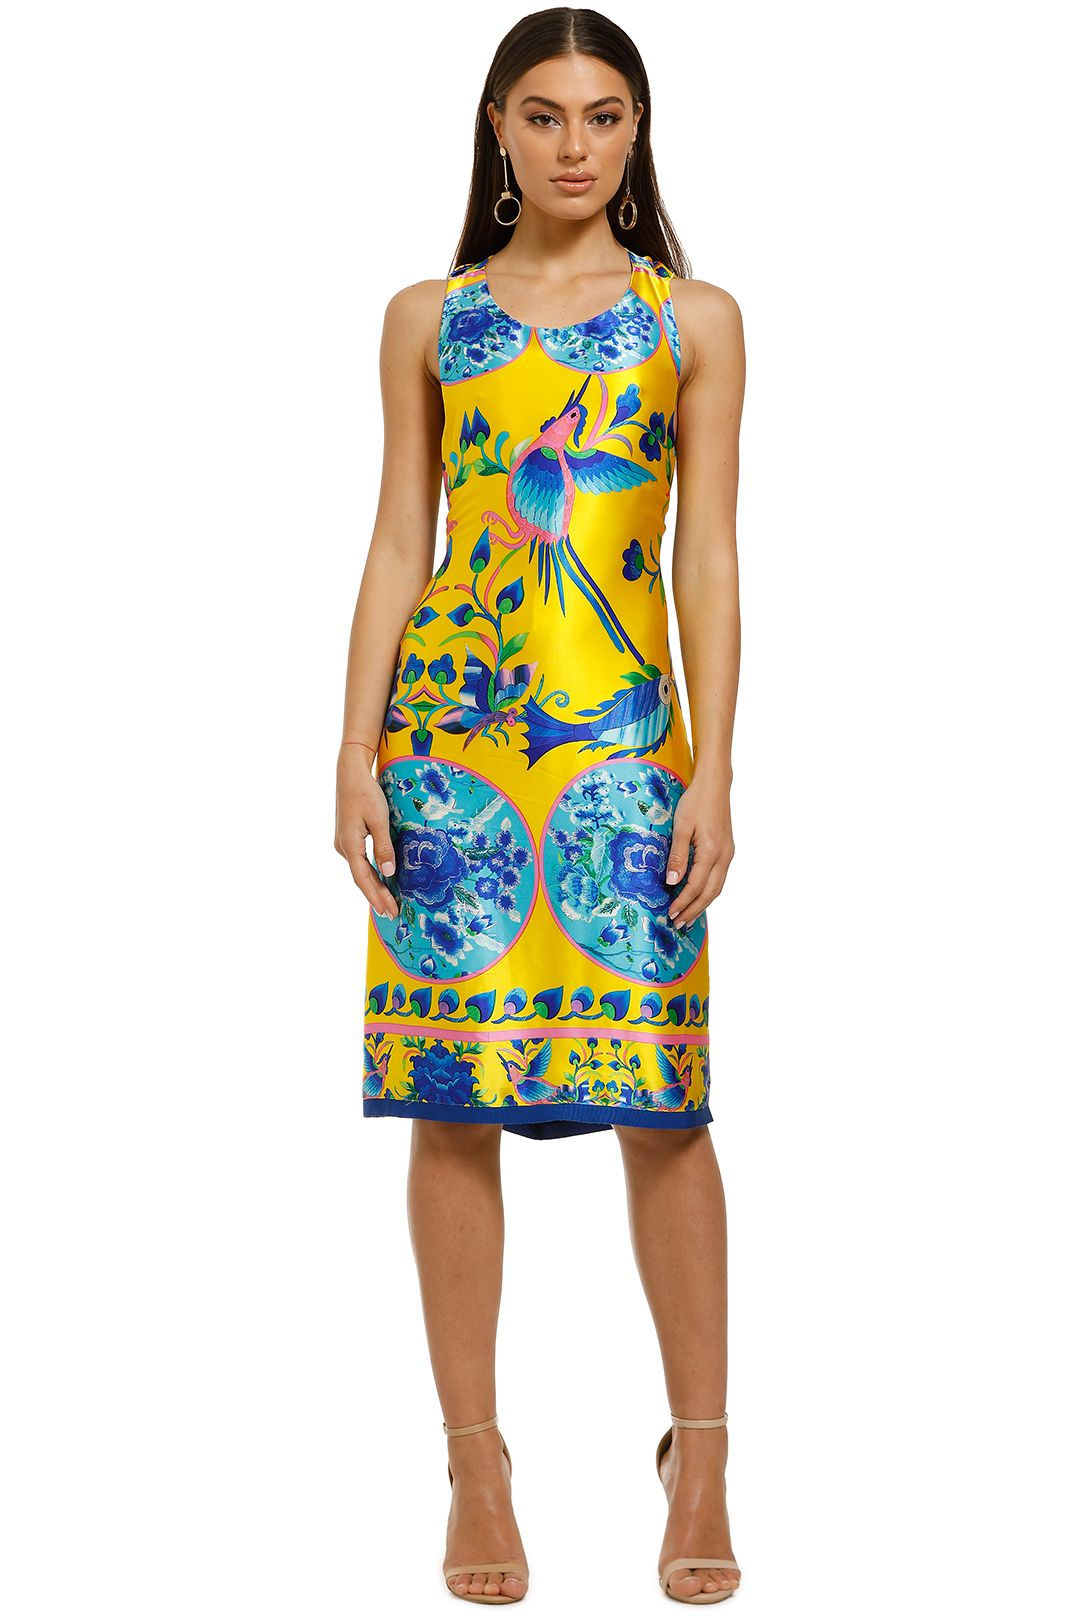 Cooper-by-Trelise-Cooper-Burning-Bright-Dress-Yellow-Print-Front